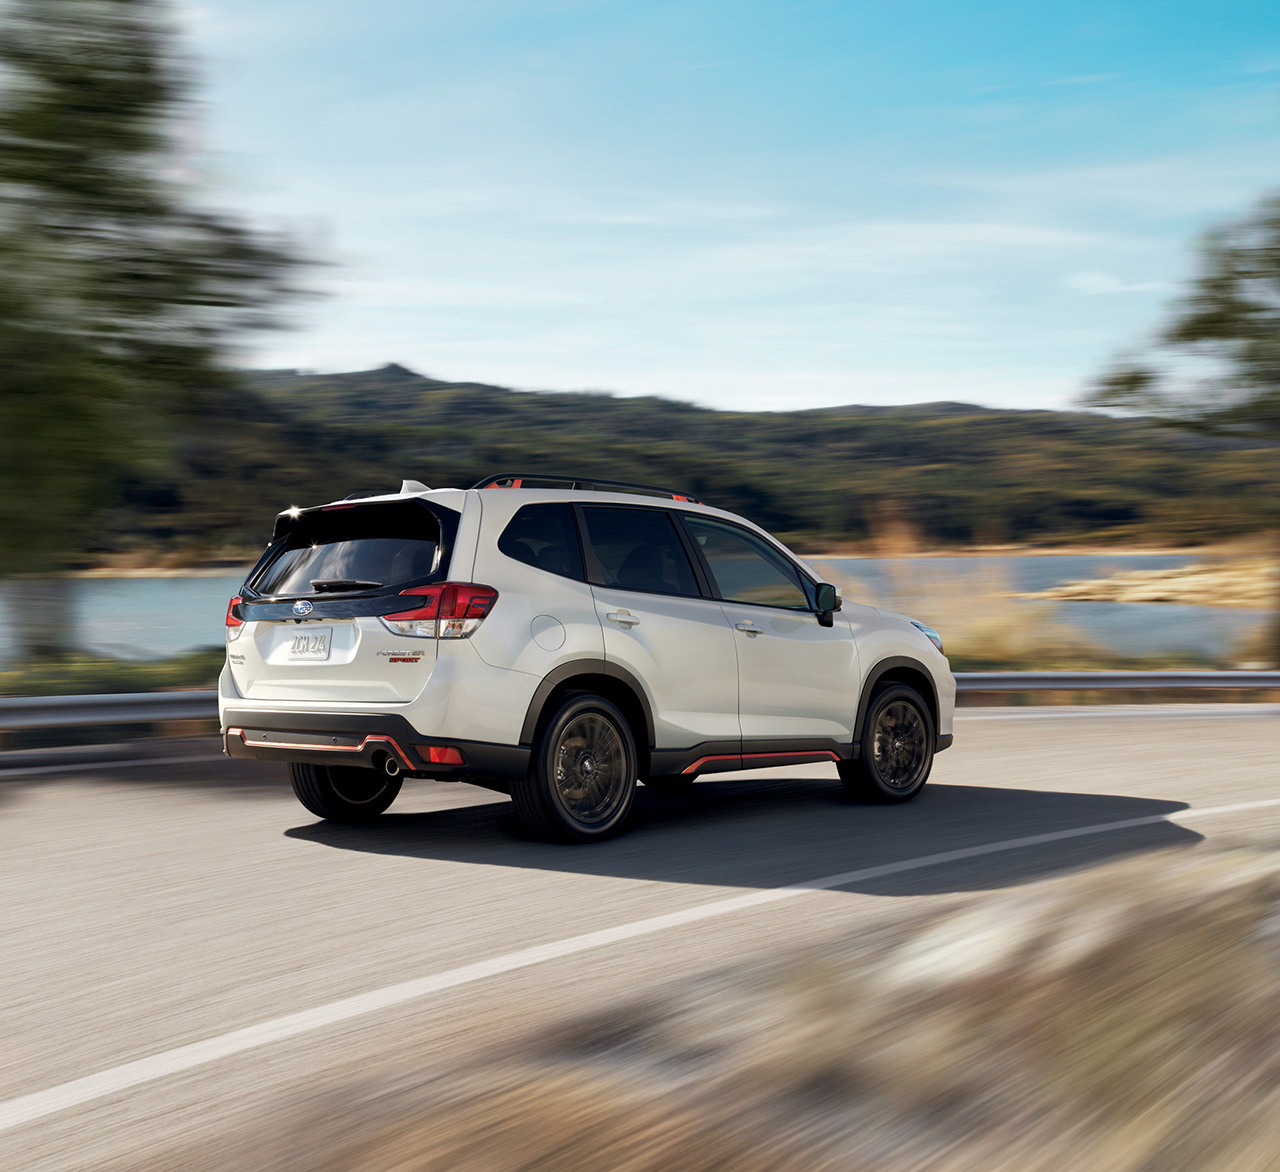 Subaru Forester is all-new for 2019 - Chicago Sun-Times